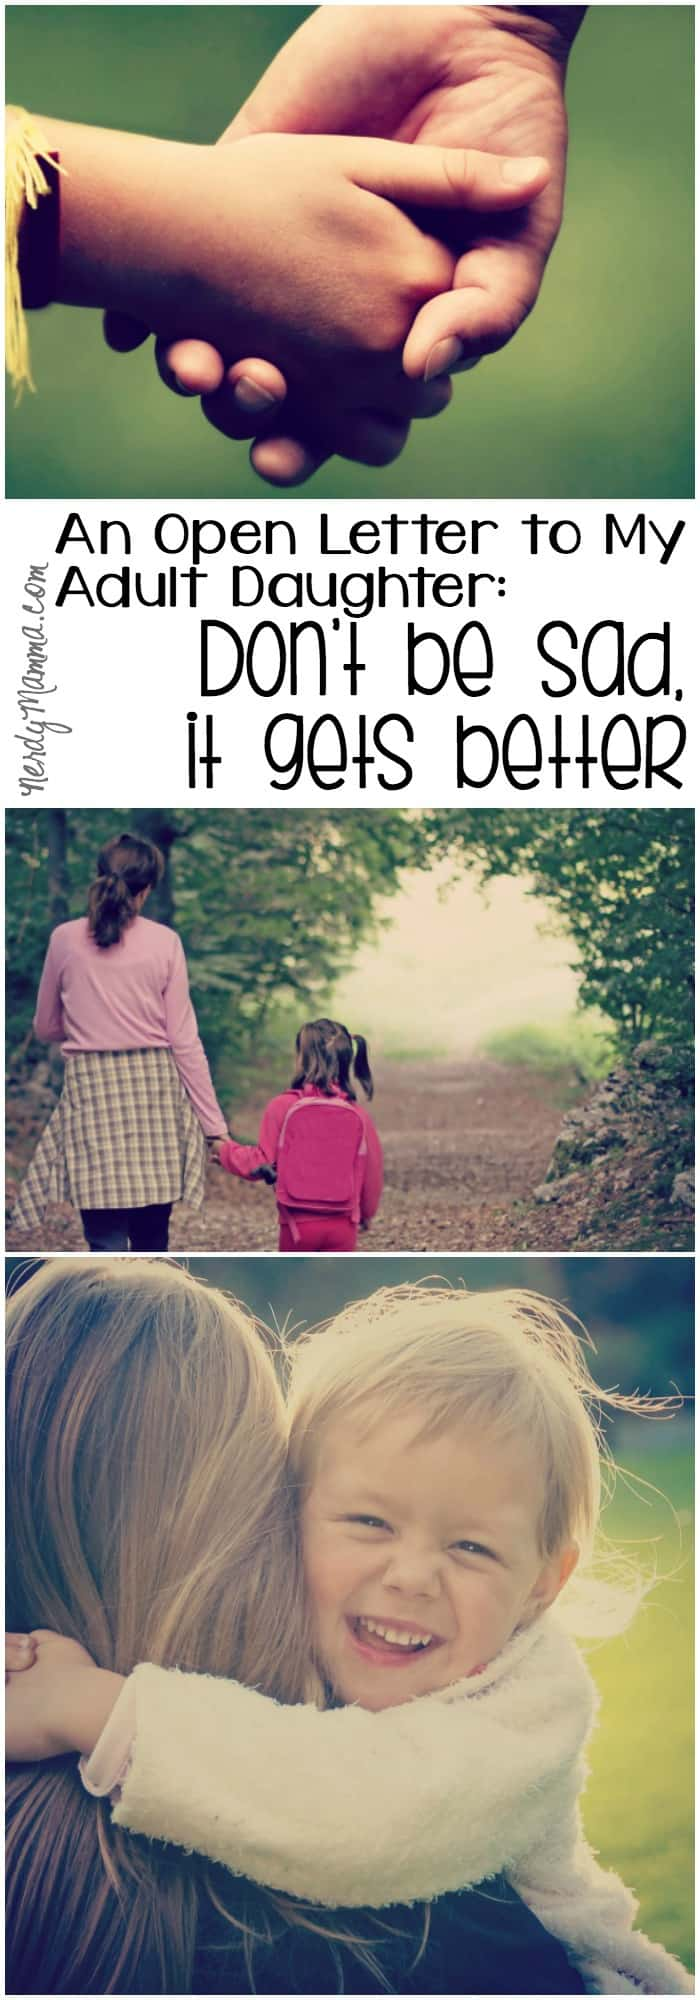 This is so inspiring. Every young mom needs to read this. To hear these words. It gets better, so don't be sad.